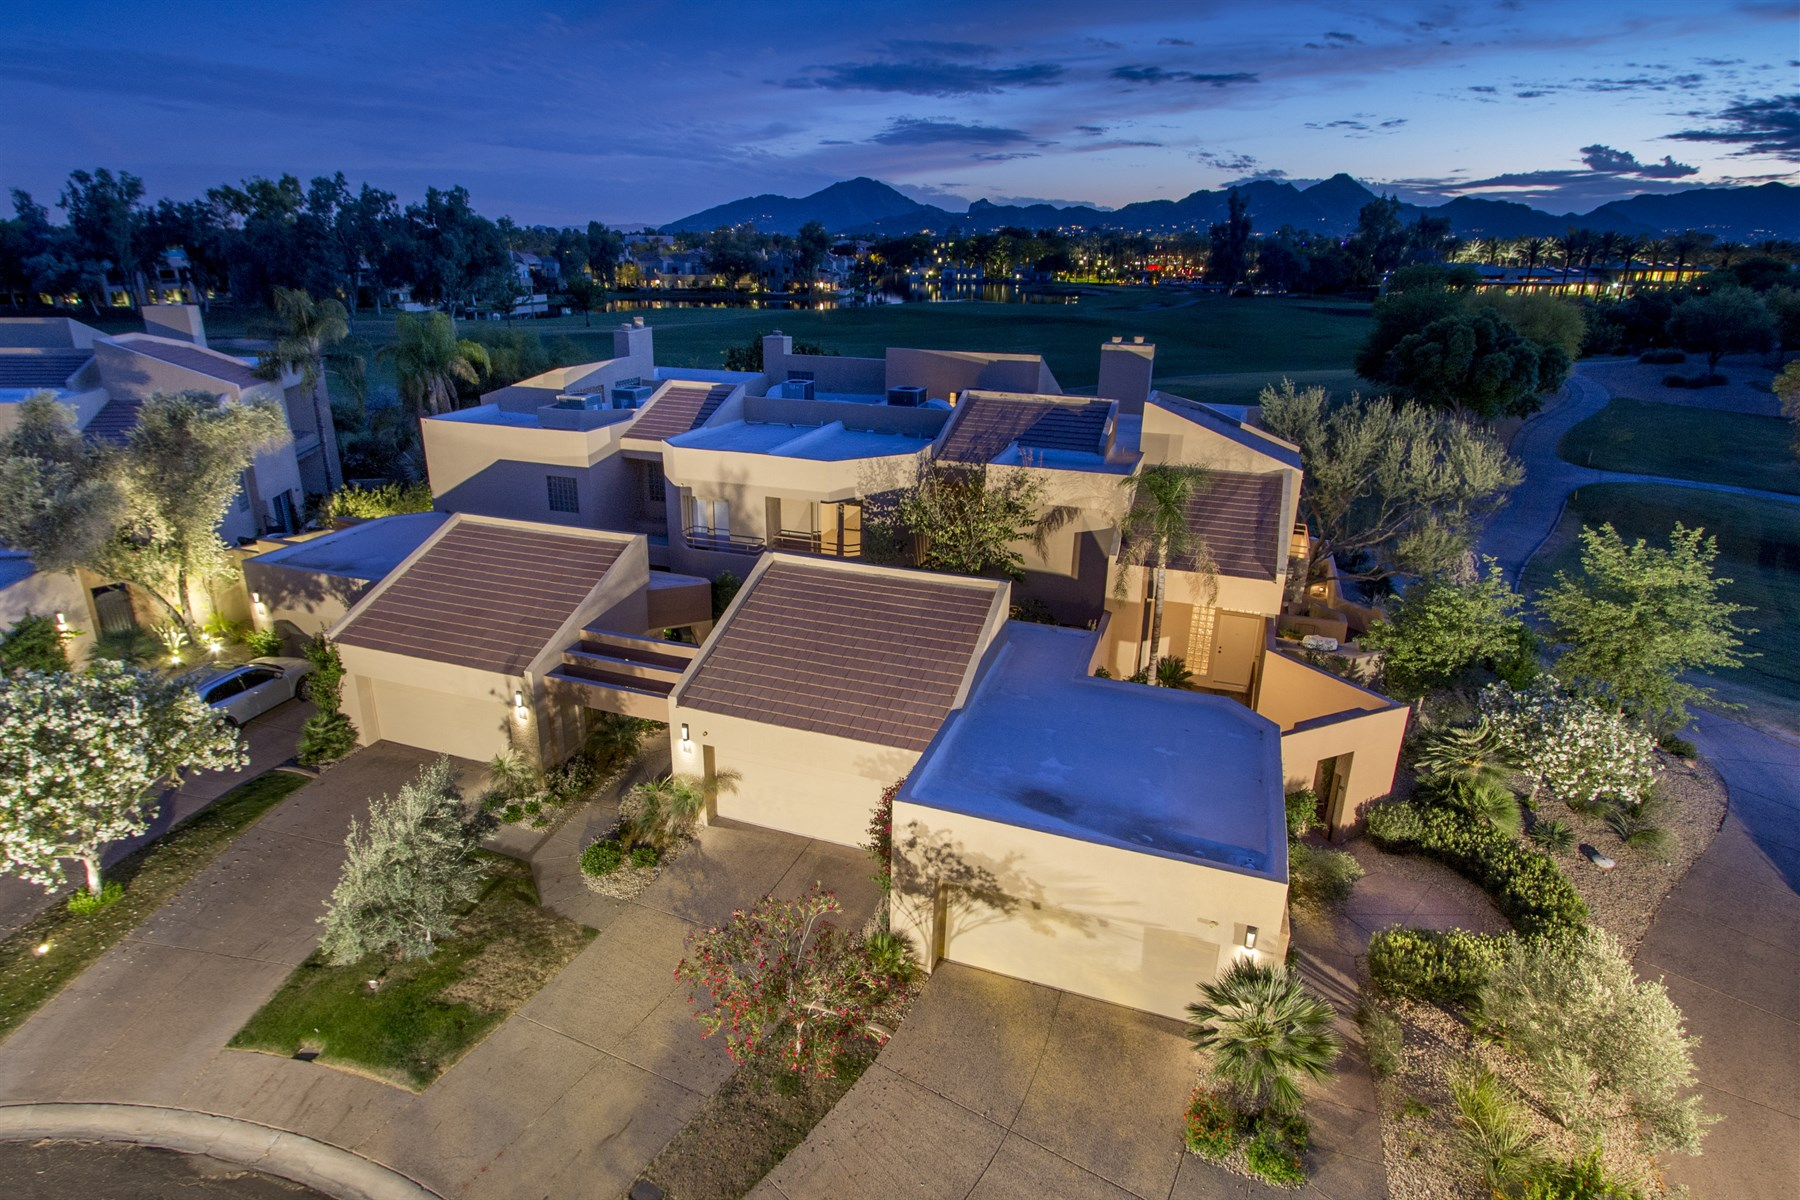 Condominium for Sale at Luxury Condo with a Great Floorplan & The Best Views in Gainey Ranch 7760 E Gainey Ranch Rd #1 Scottsdale, Arizona, 85258 United States